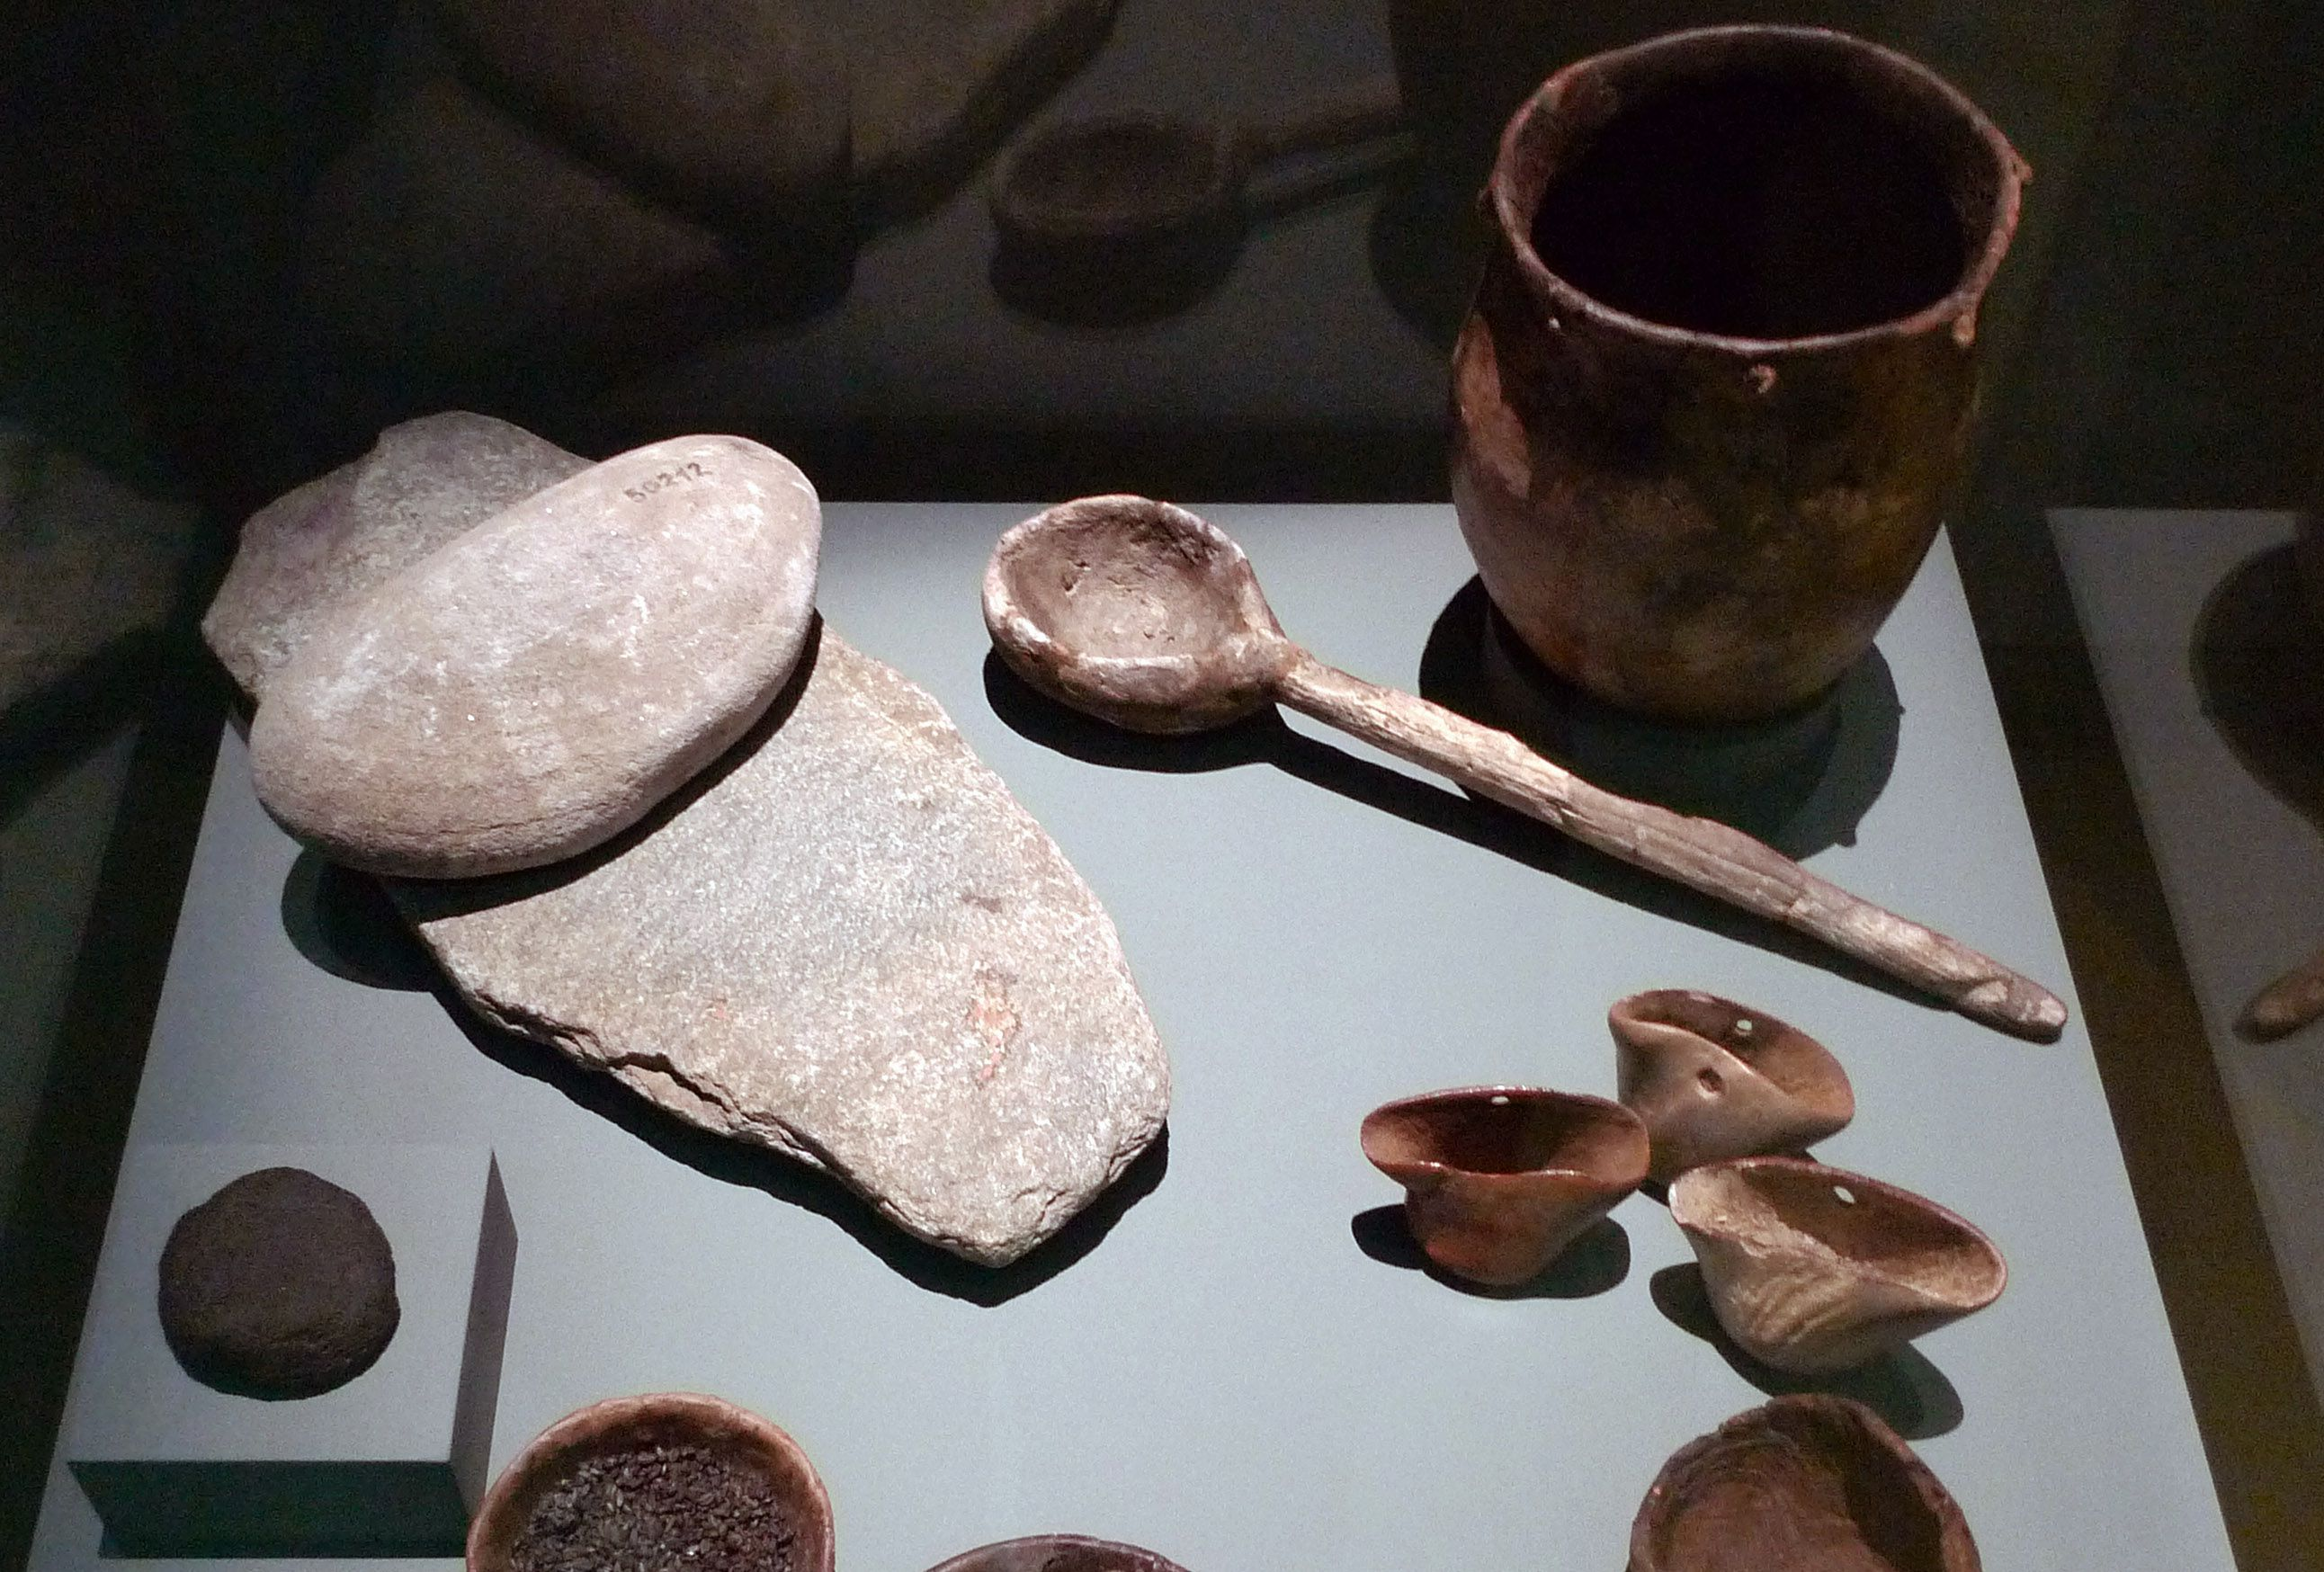 Ancient Cooking Pots Reveal Gradual Transition To